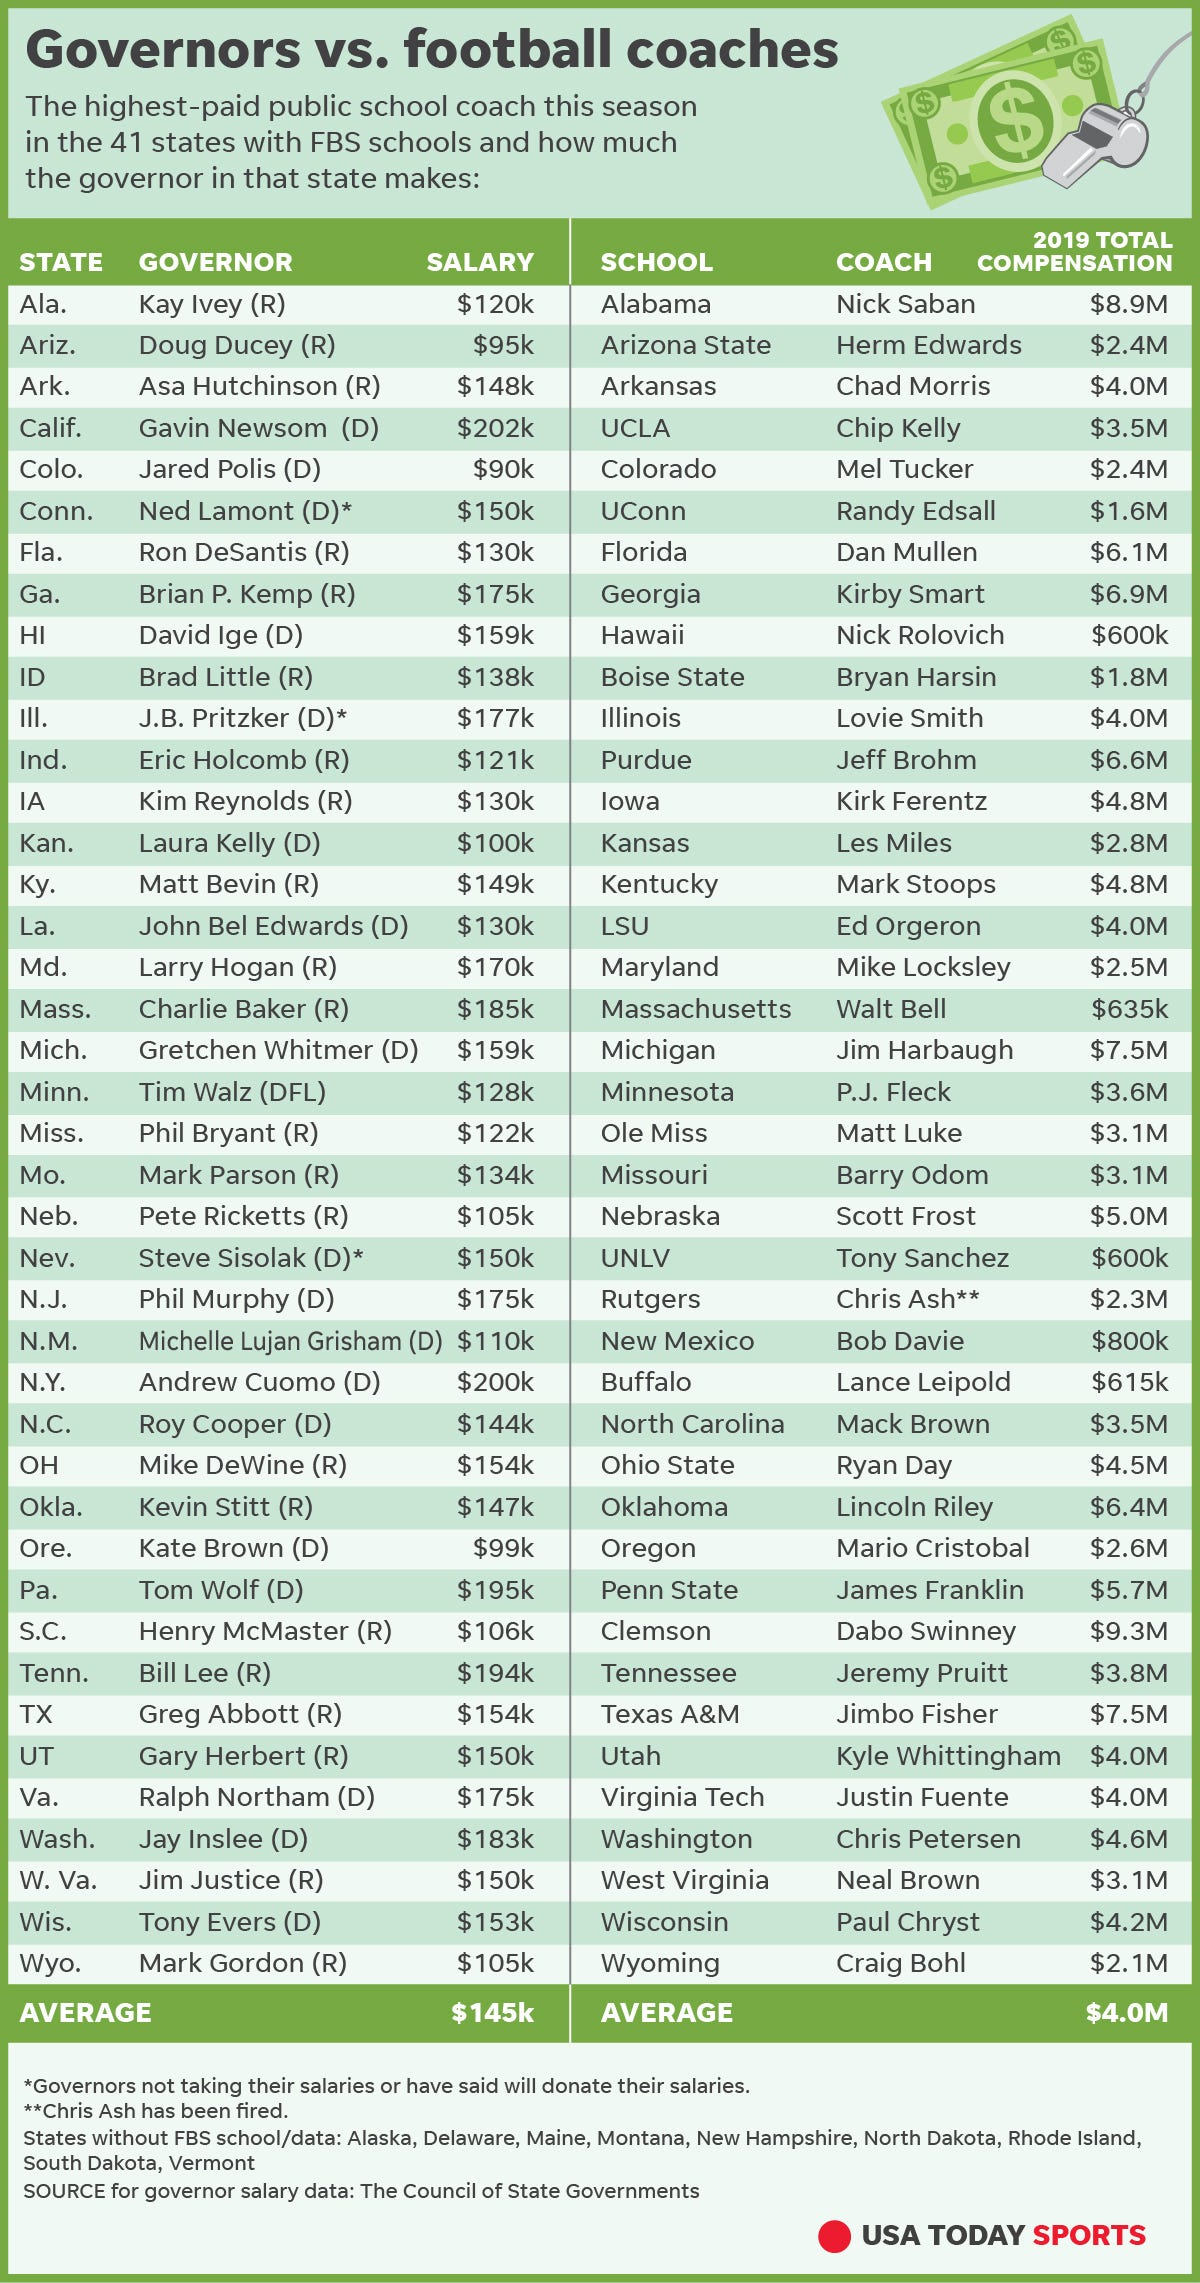 Football and governors salaries - who makes over one million a yar